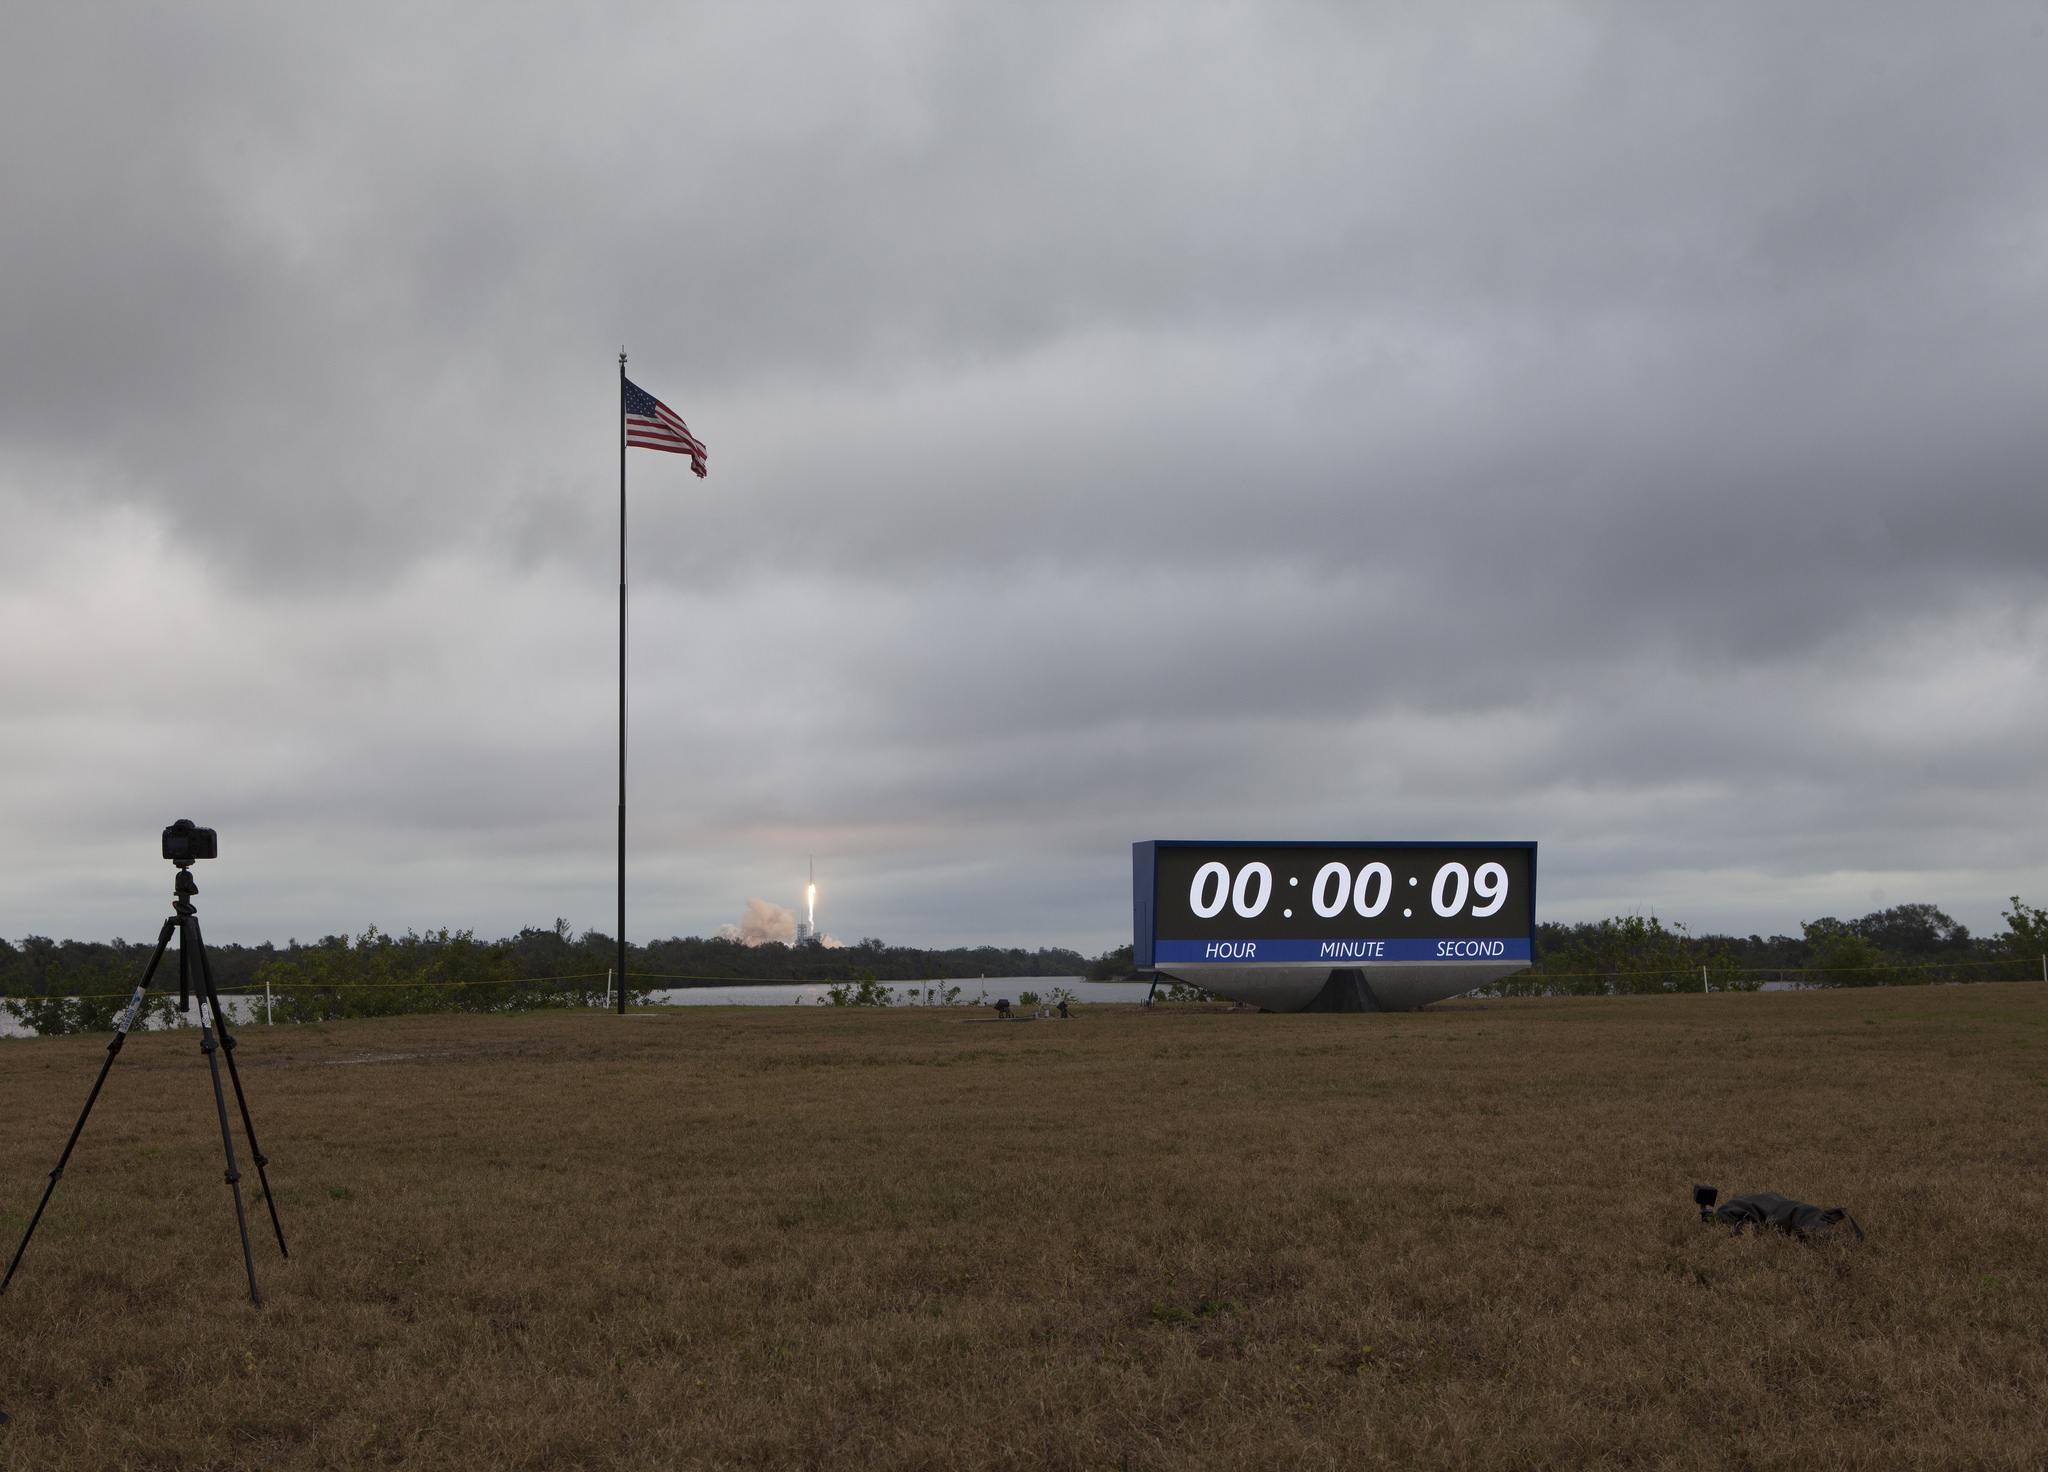 SpaceX, NASA Hail 1st Falcon 9 Rocket Launch from Pad Steeped in History